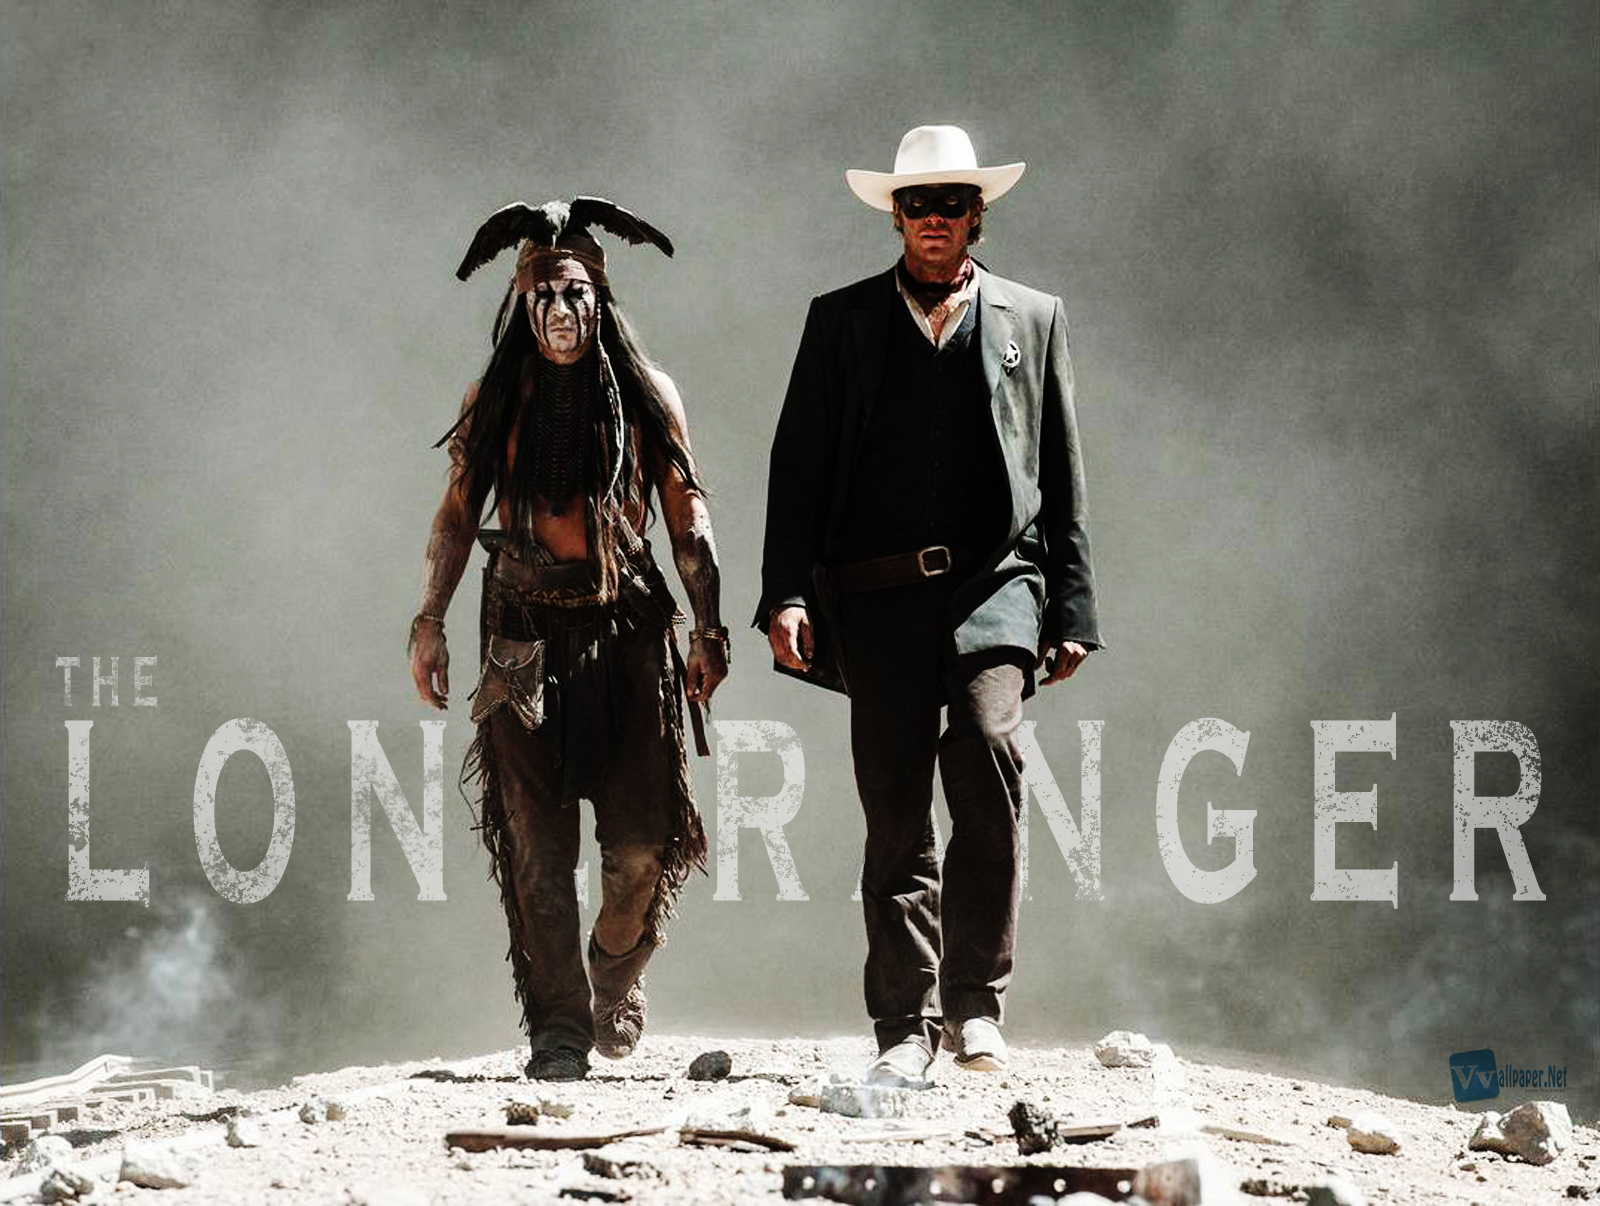 the lone ranger 2013 movie hd wallpapers and poster hq